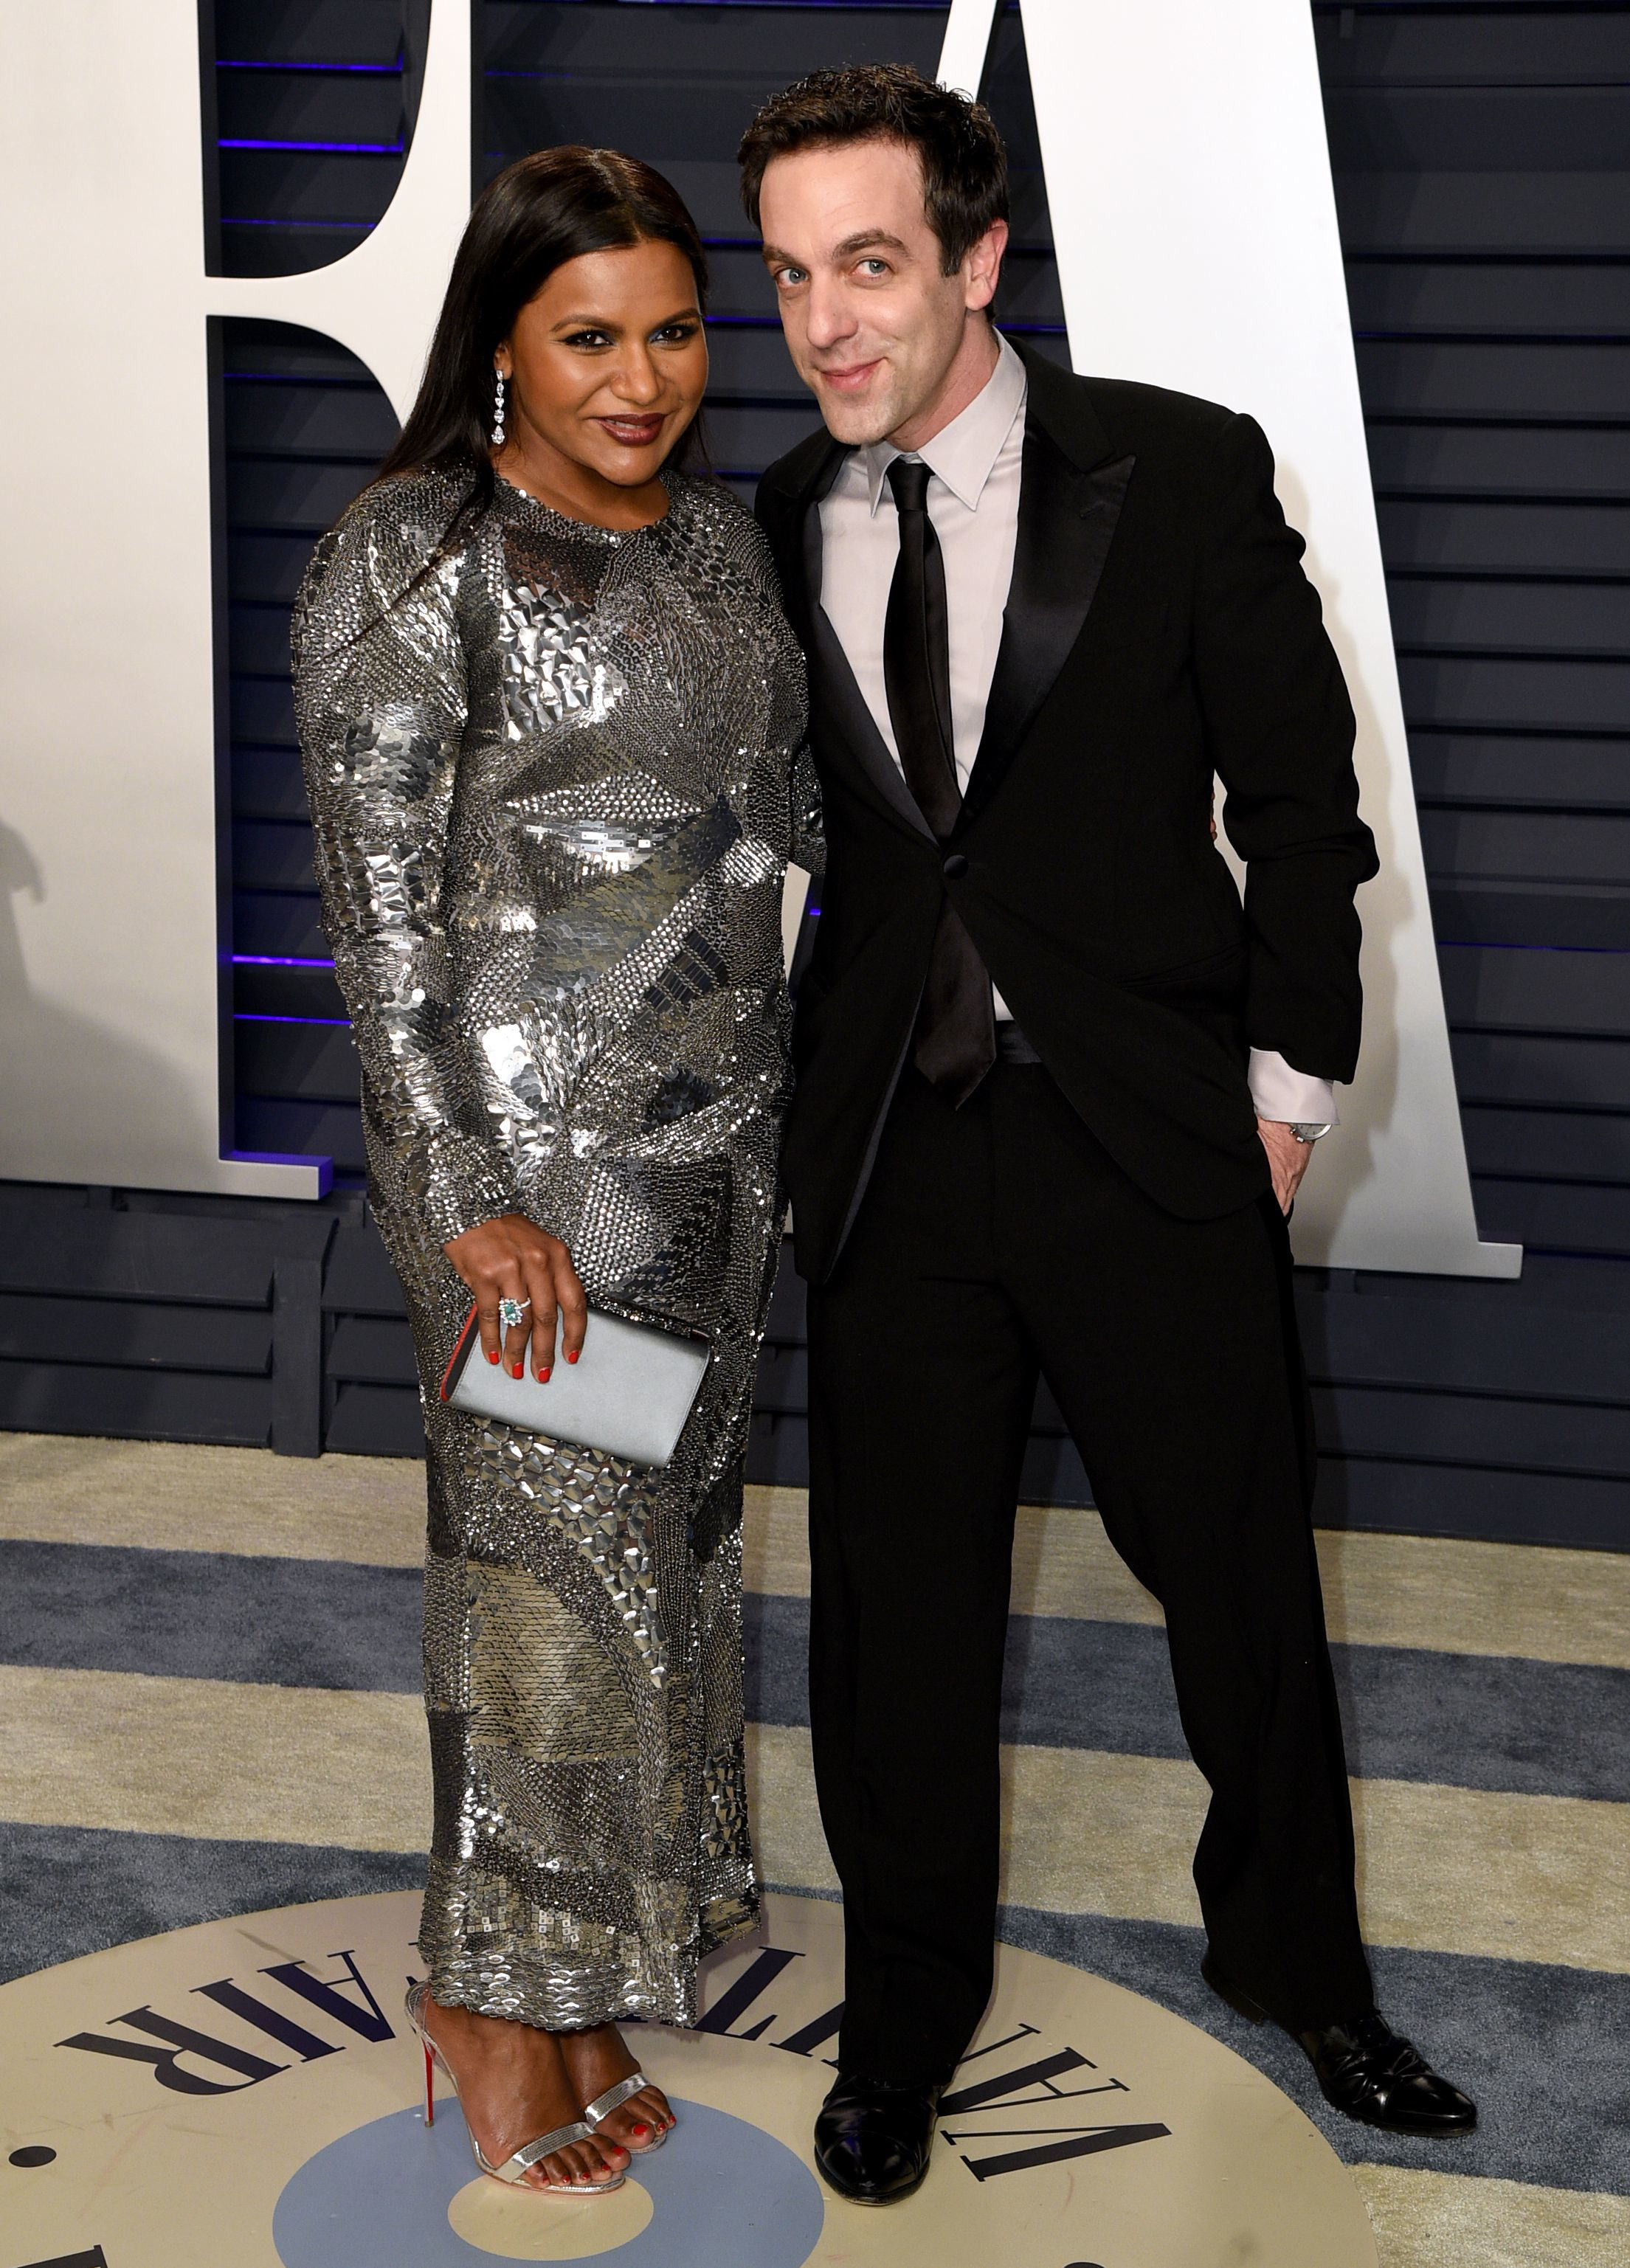 Mindy Kaling and B.J. Novak attend the Vanity Fair Oscar Party in Beverly Hills on Feb. 24, 2019.